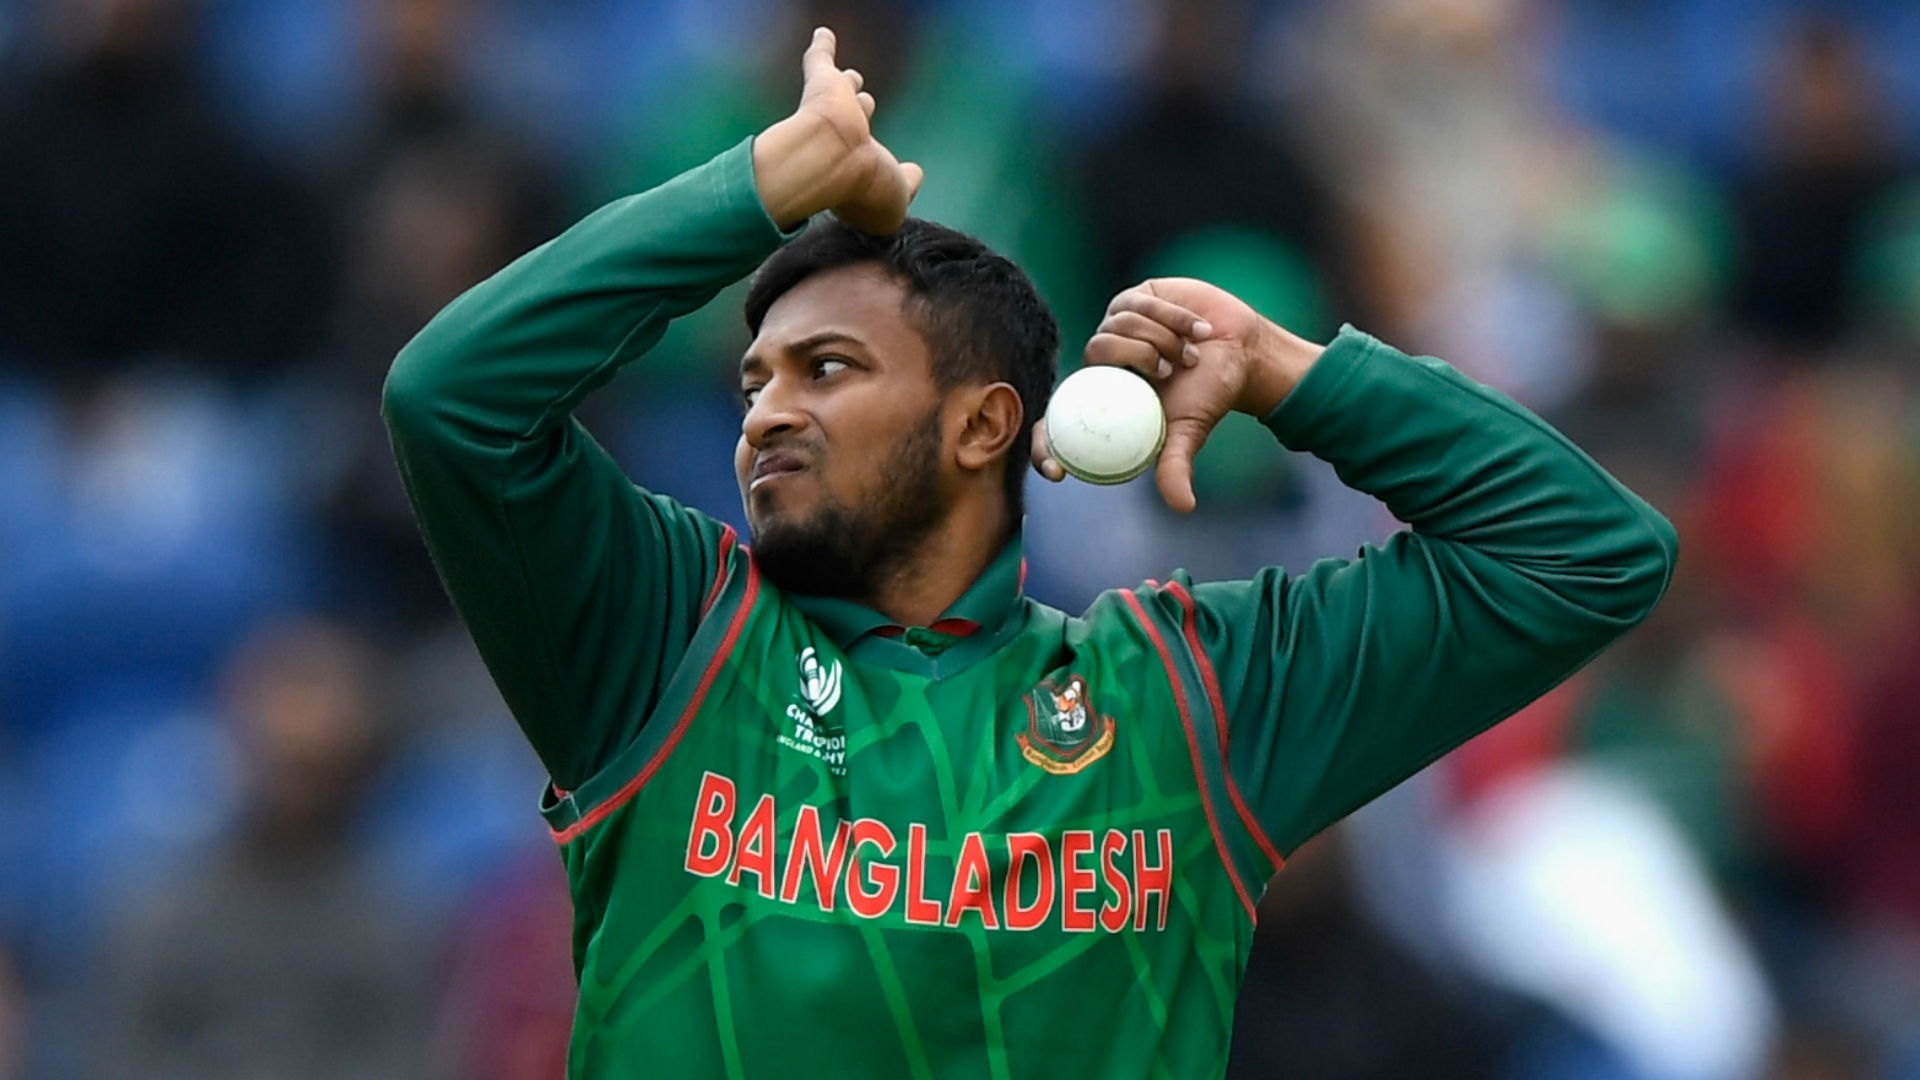 Bangladesh's easy ODI win over Ireland included an injury to star man Shakib Al Hasan, with the Cricket World Cup looming.